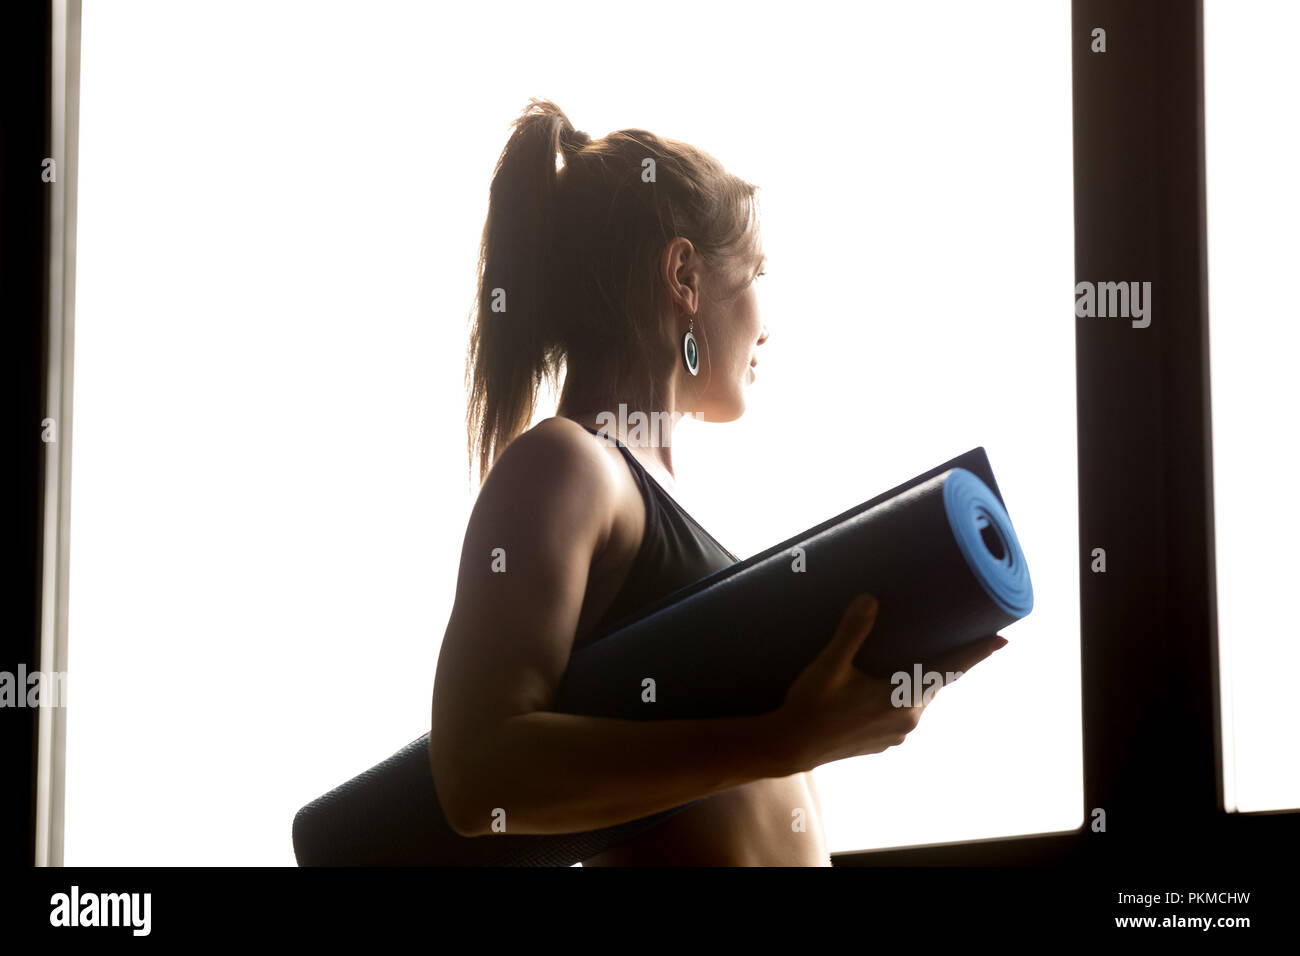 Sporty woman holding blue yoga mat, healthy lifestyle concept - Stock Image